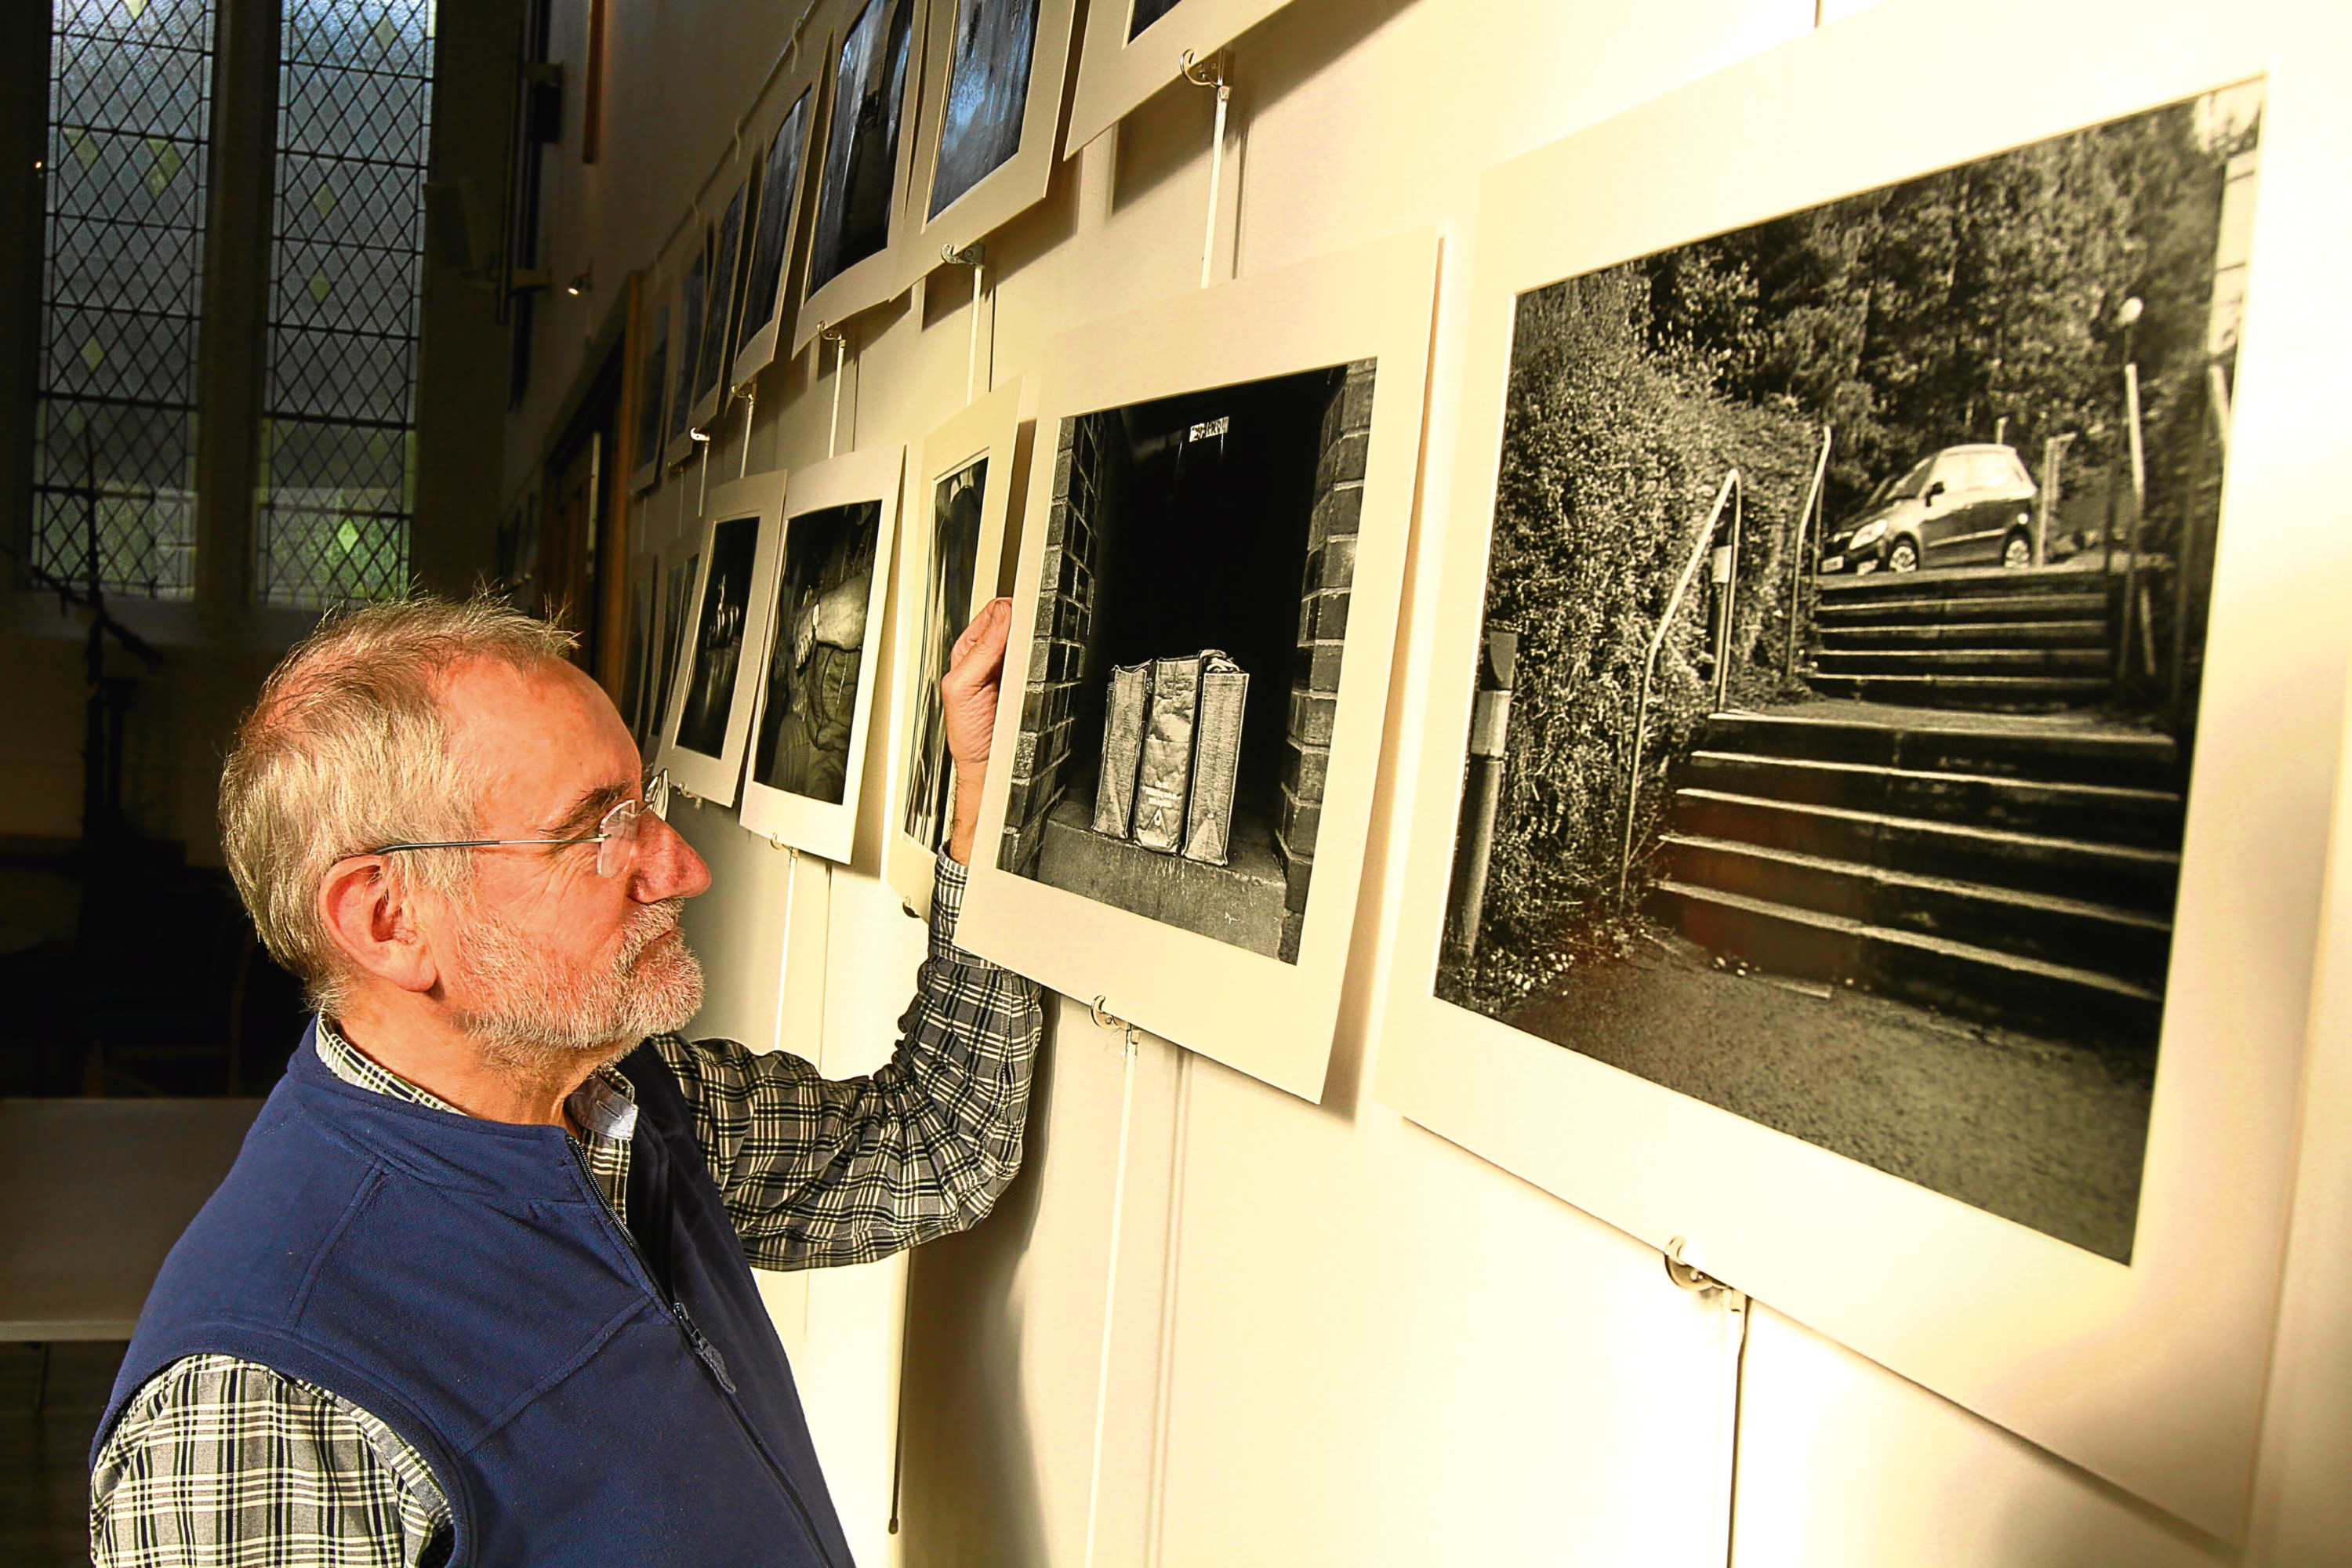 Rev Robert Calvert, looking at some of the photographs in the Developing Recovery photographic exhibition at the Steeple Church in Dundee